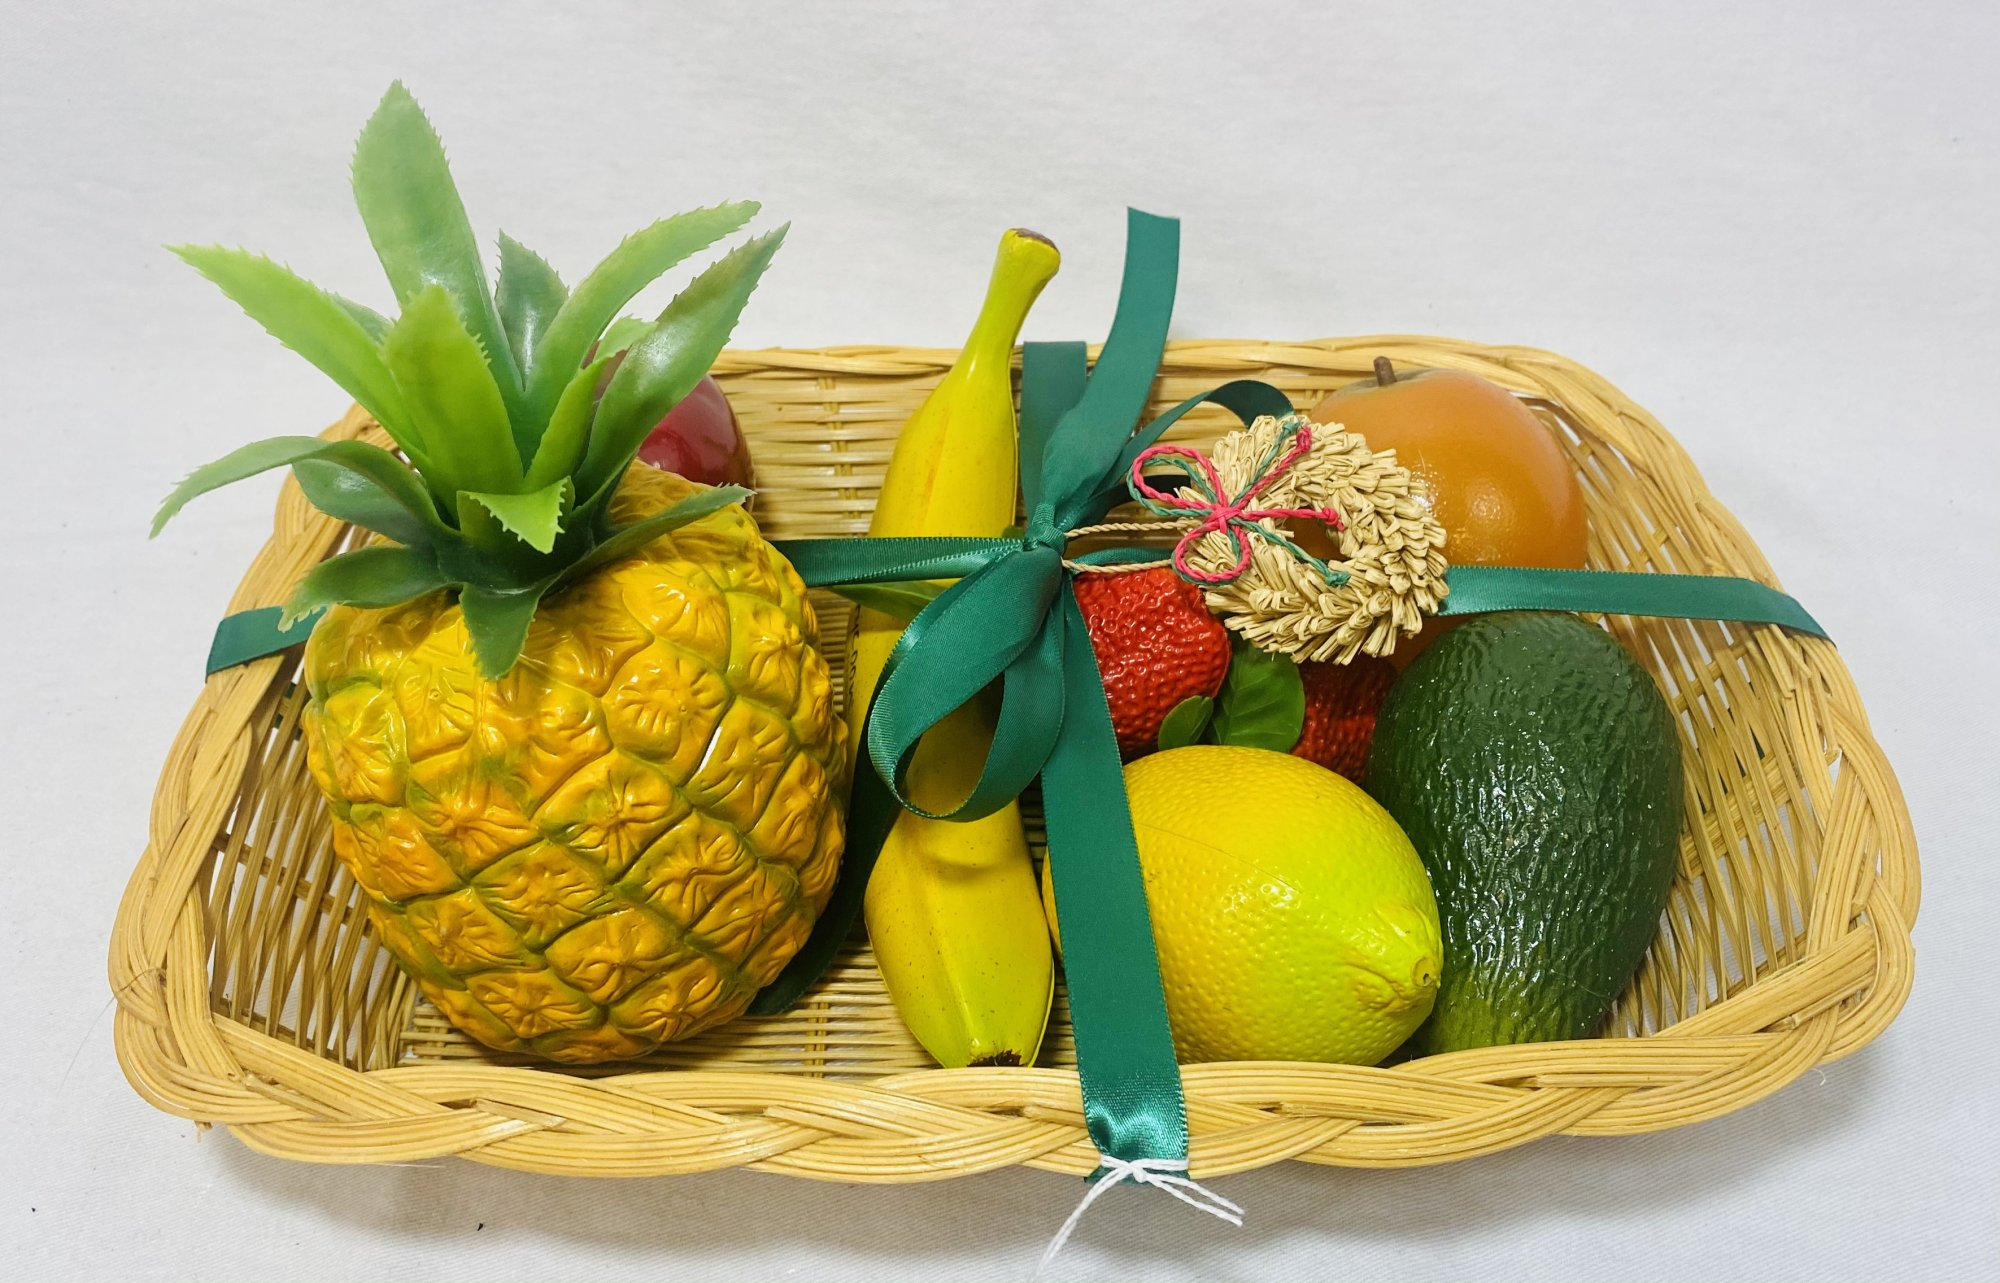 TYCOON PERCUSSION MULTI FRUIT SHAKERS COMES WITH BASKET